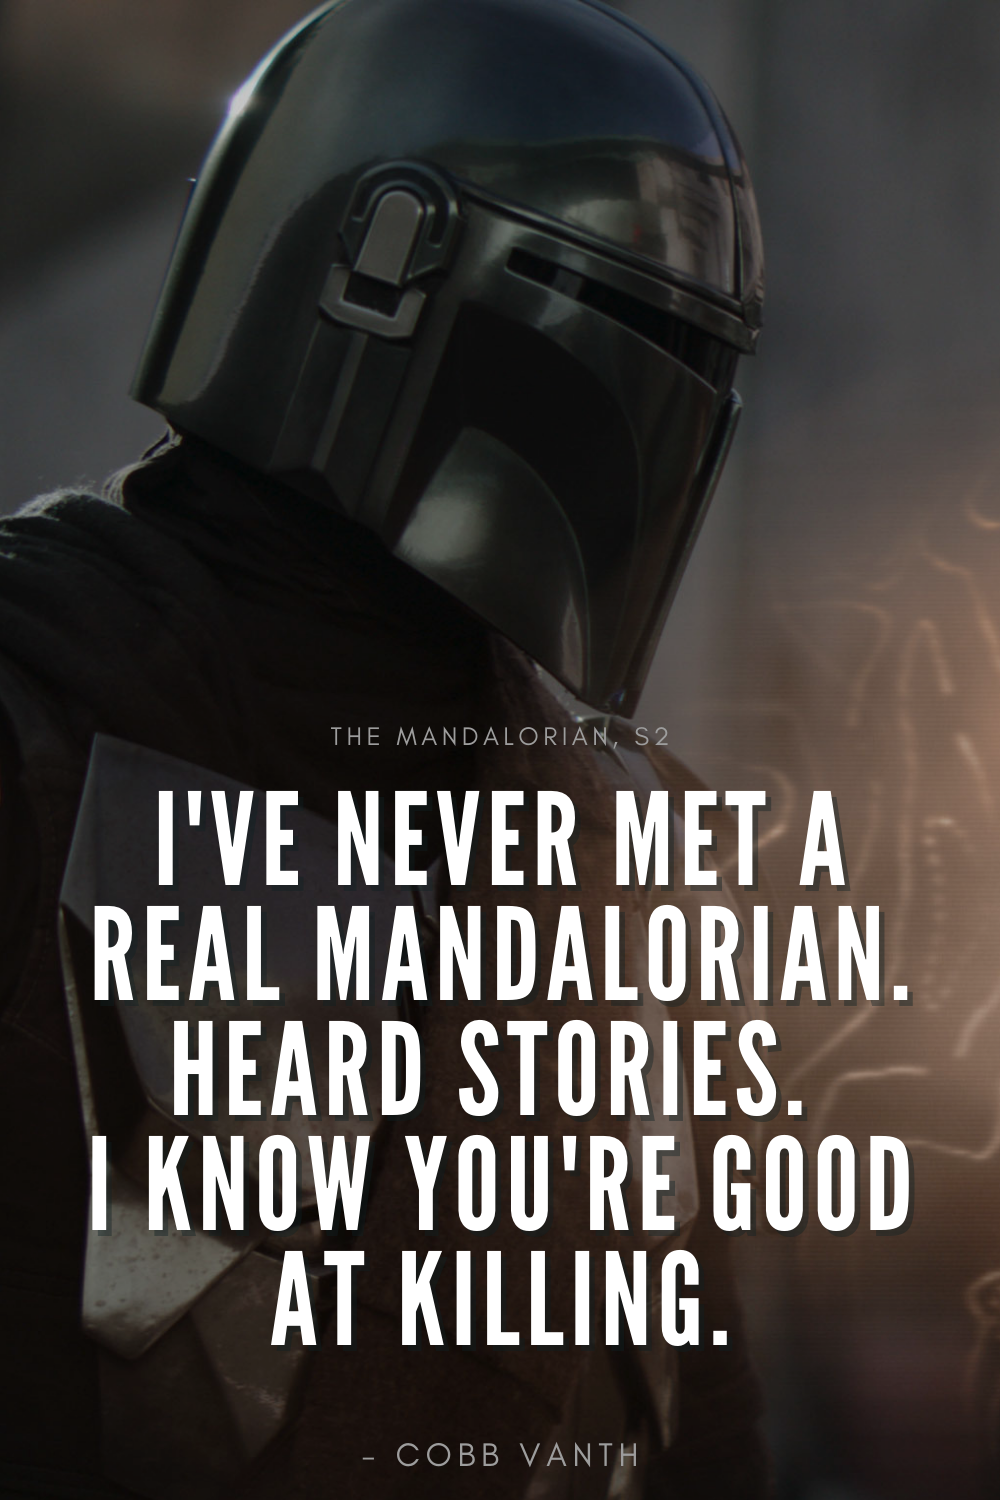 The Best Mandalorian Quotes From Season 2 Popcorner Reviews This installment hasn't done much to assuage that fear. the best mandalorian quotes from season